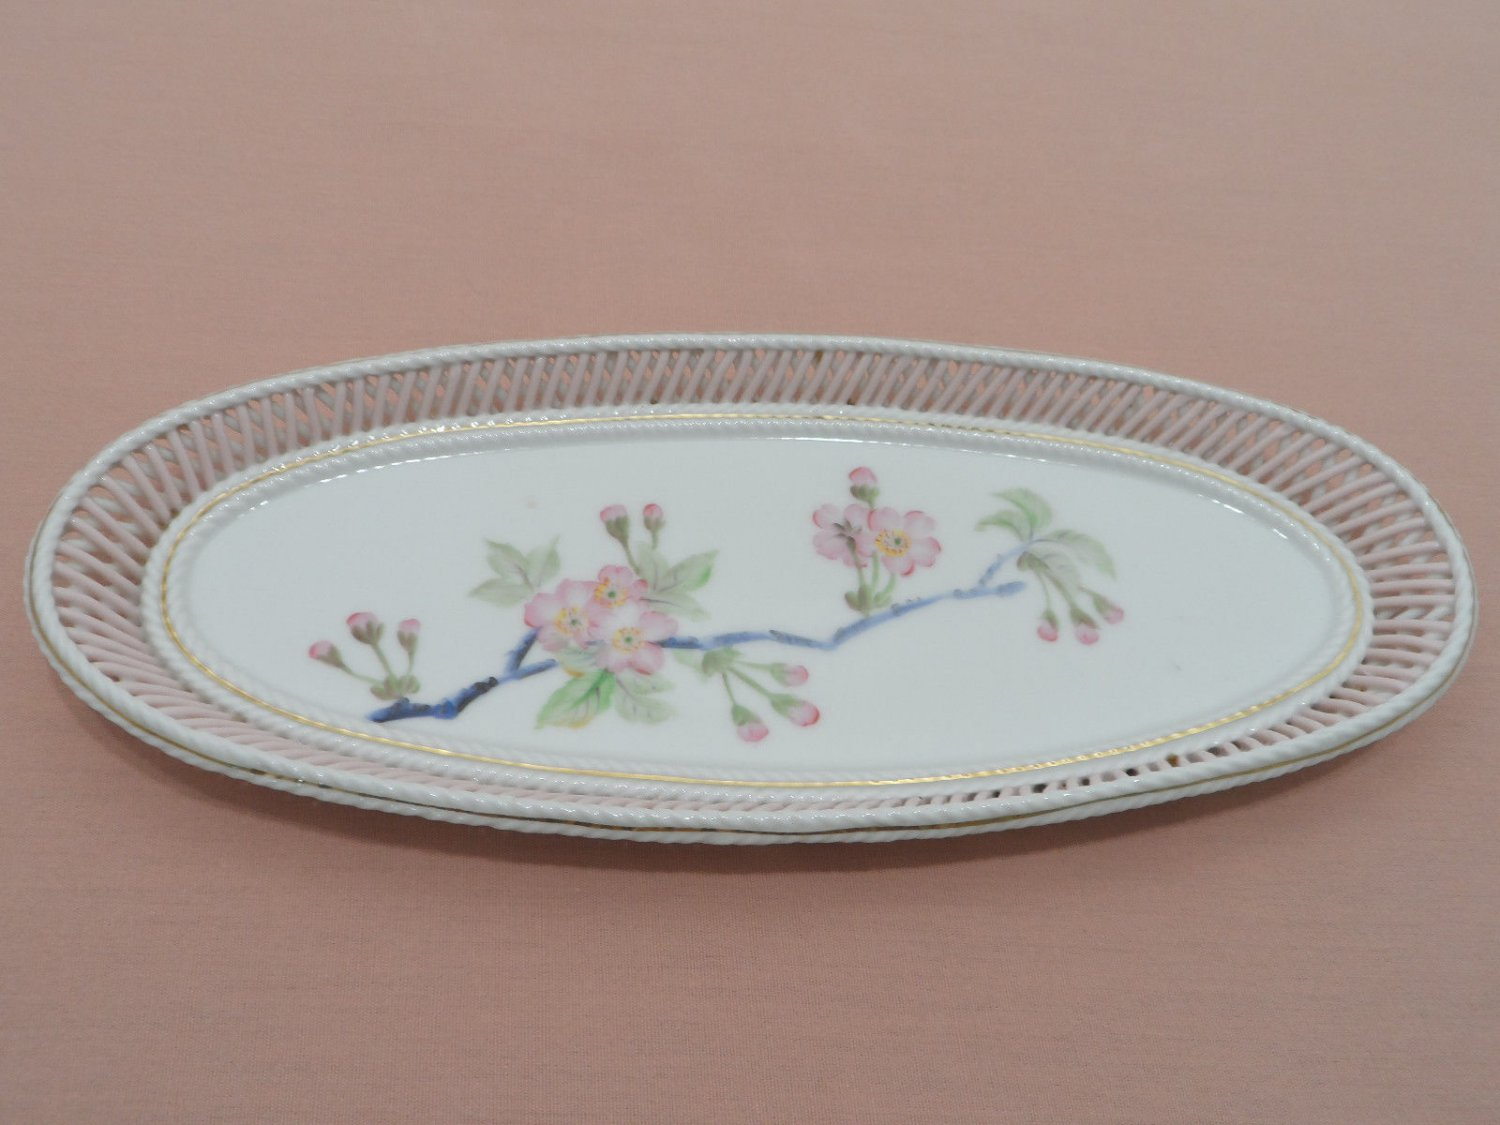 Porcelain Vanity Dresser Tray with Lattice Sides Pink and white Floral